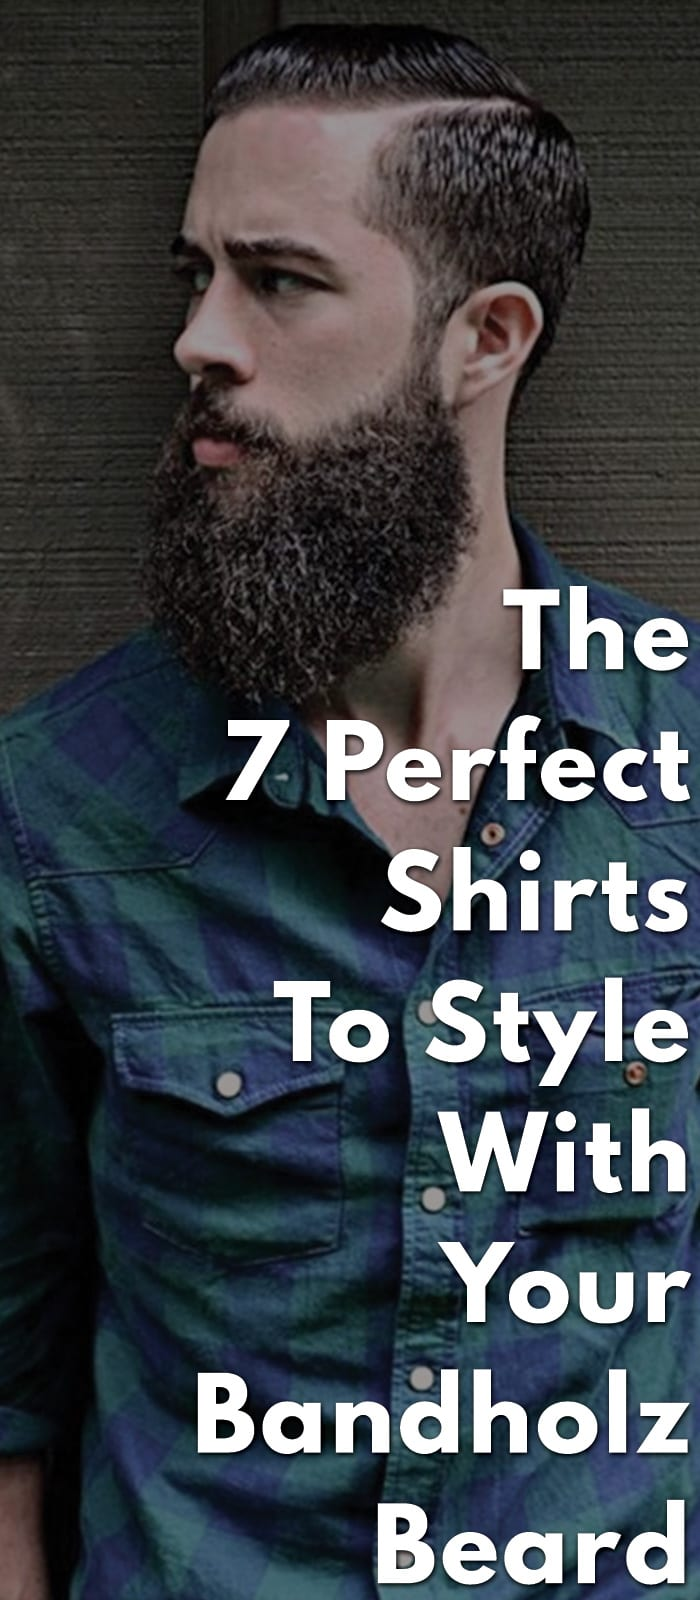 The-7-Perfect-Shirts-To-Style-With-Your-Bandholz-Beard.